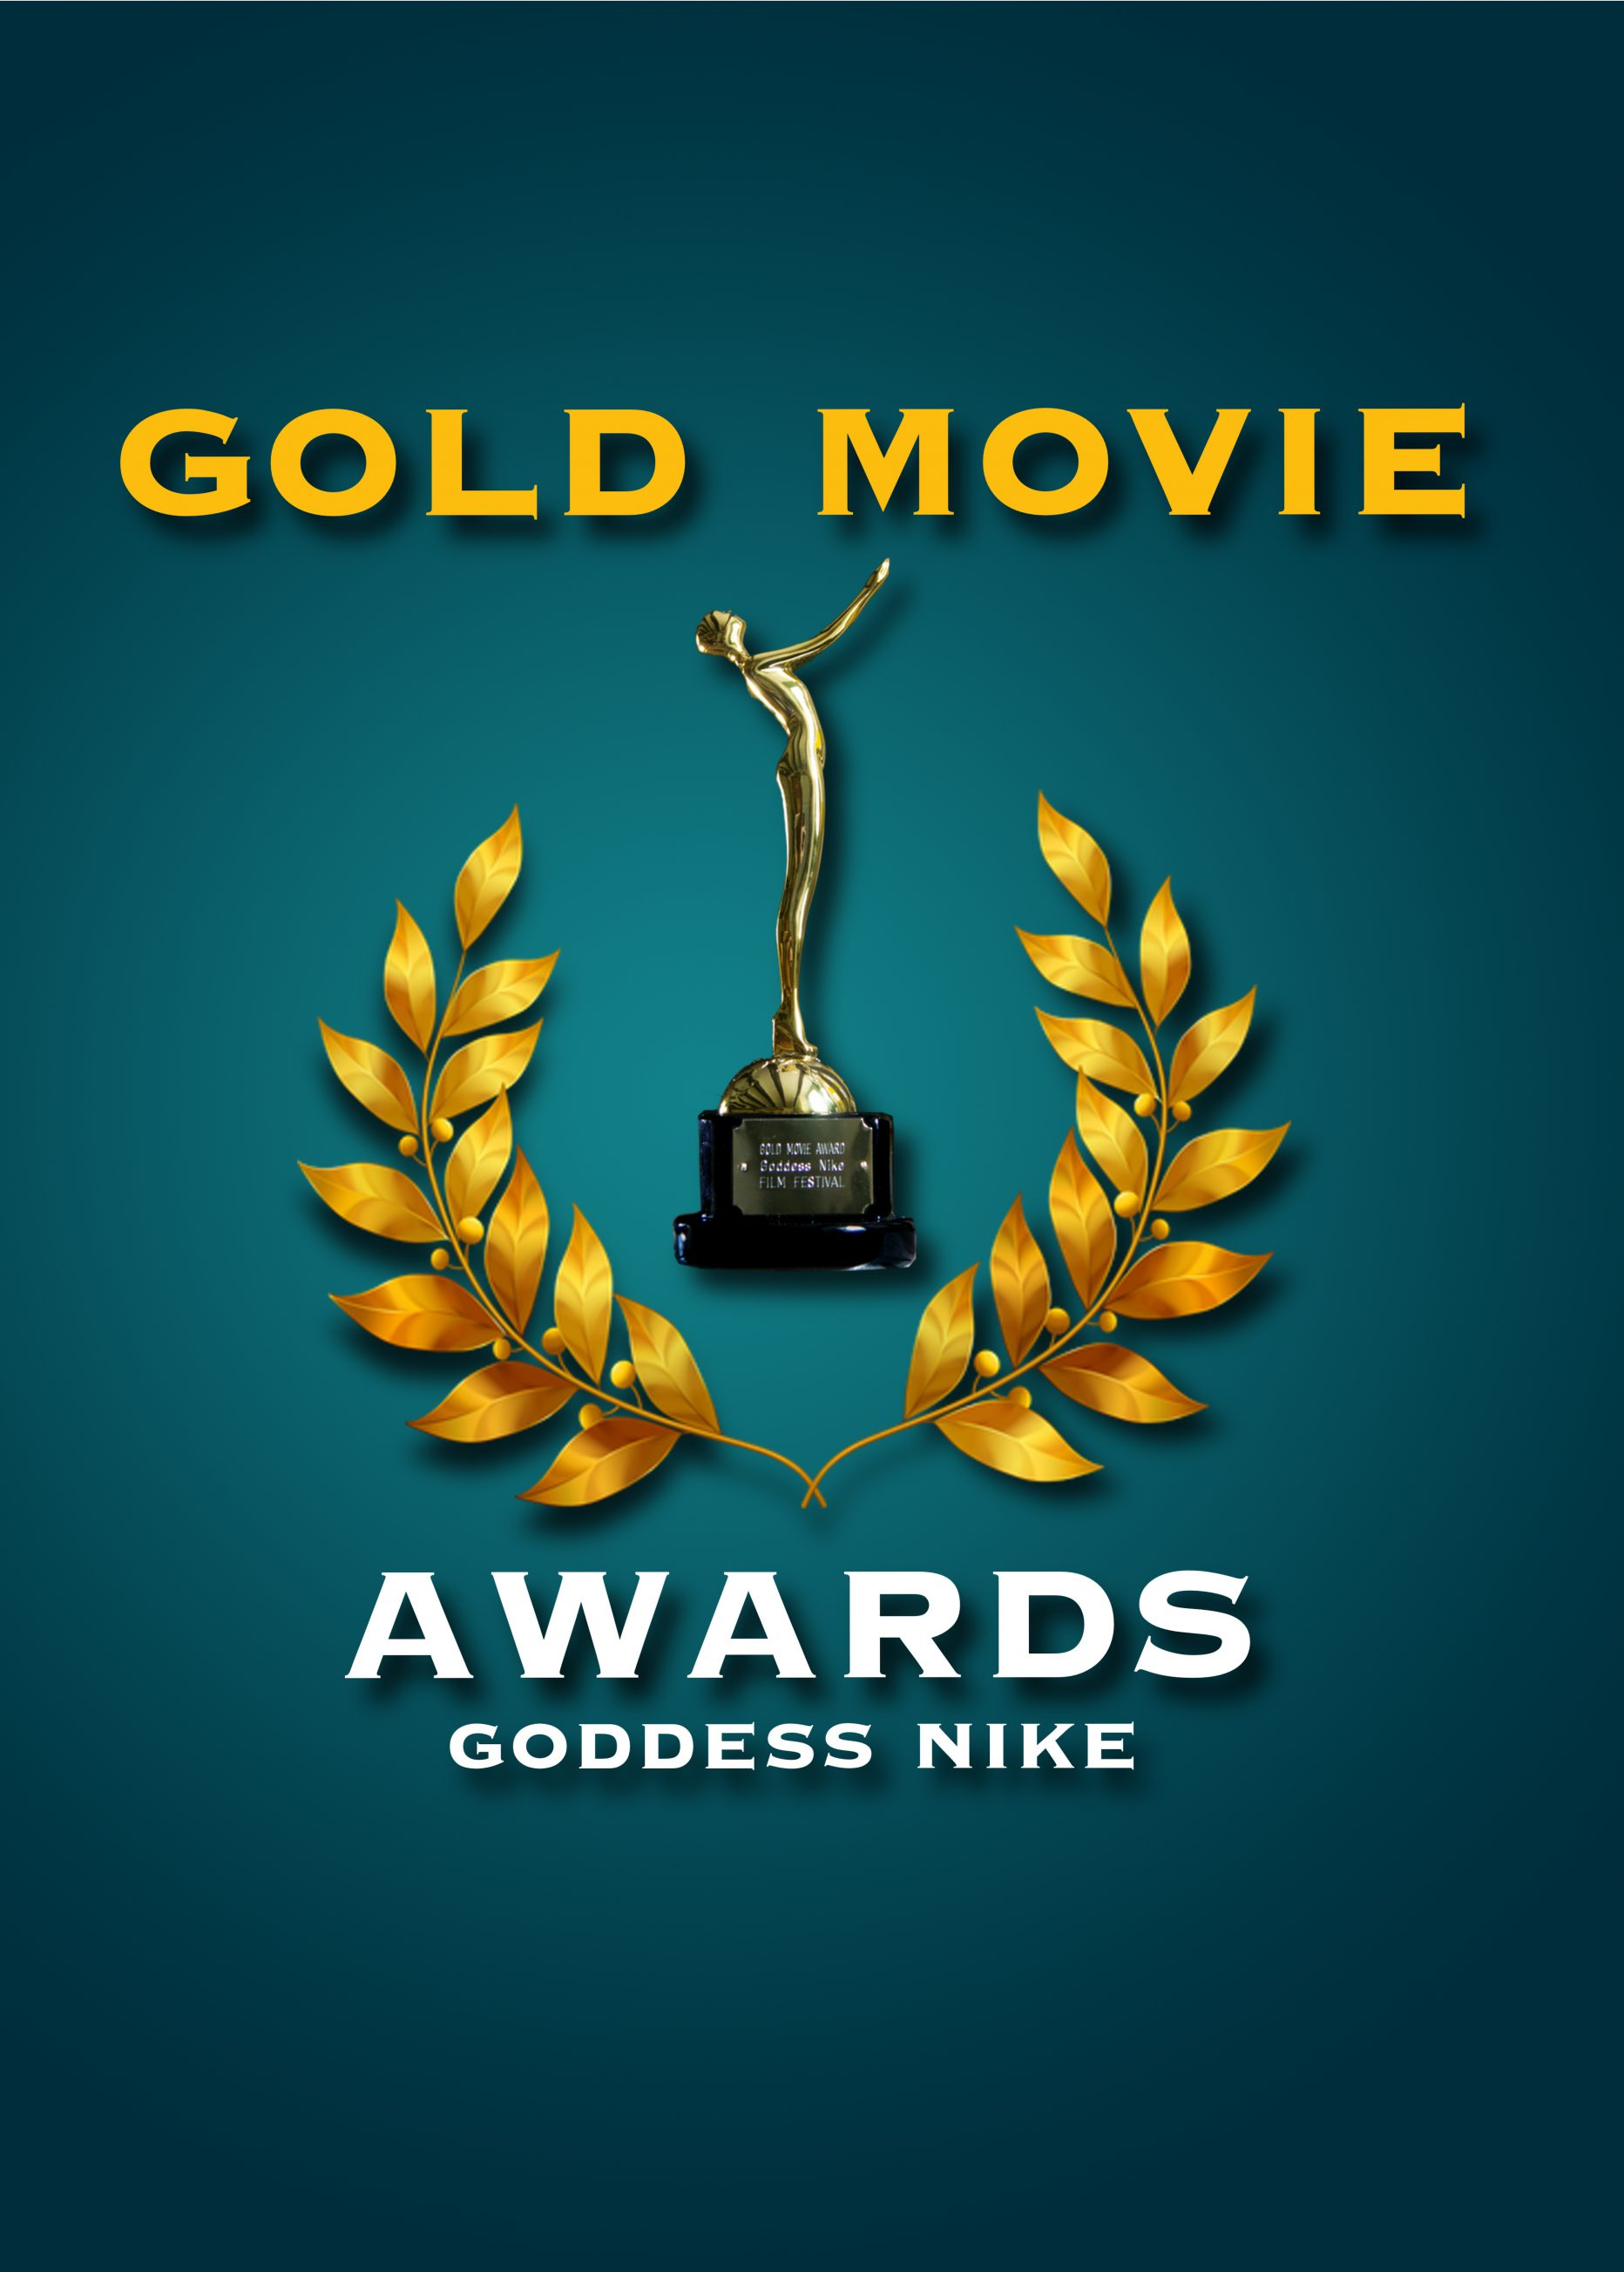 GOLD MOVIE AWARDS